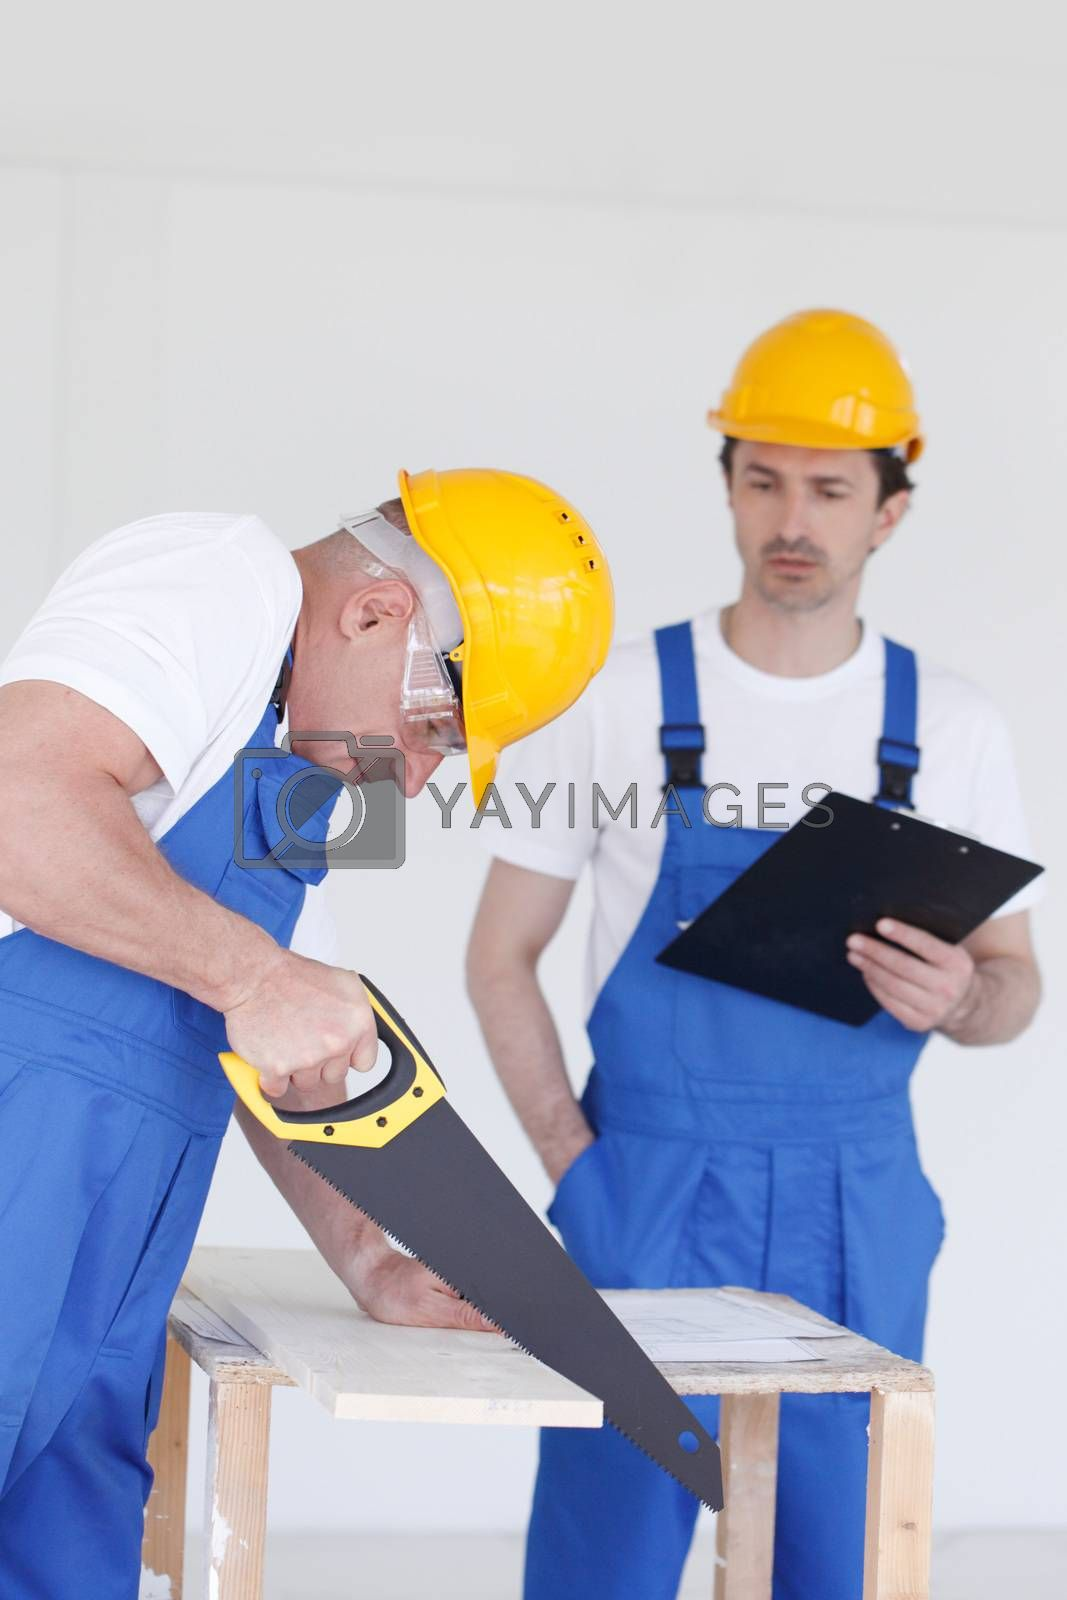 Business, building, teamwork and people concept - group of builders in hardhats with tools indoors